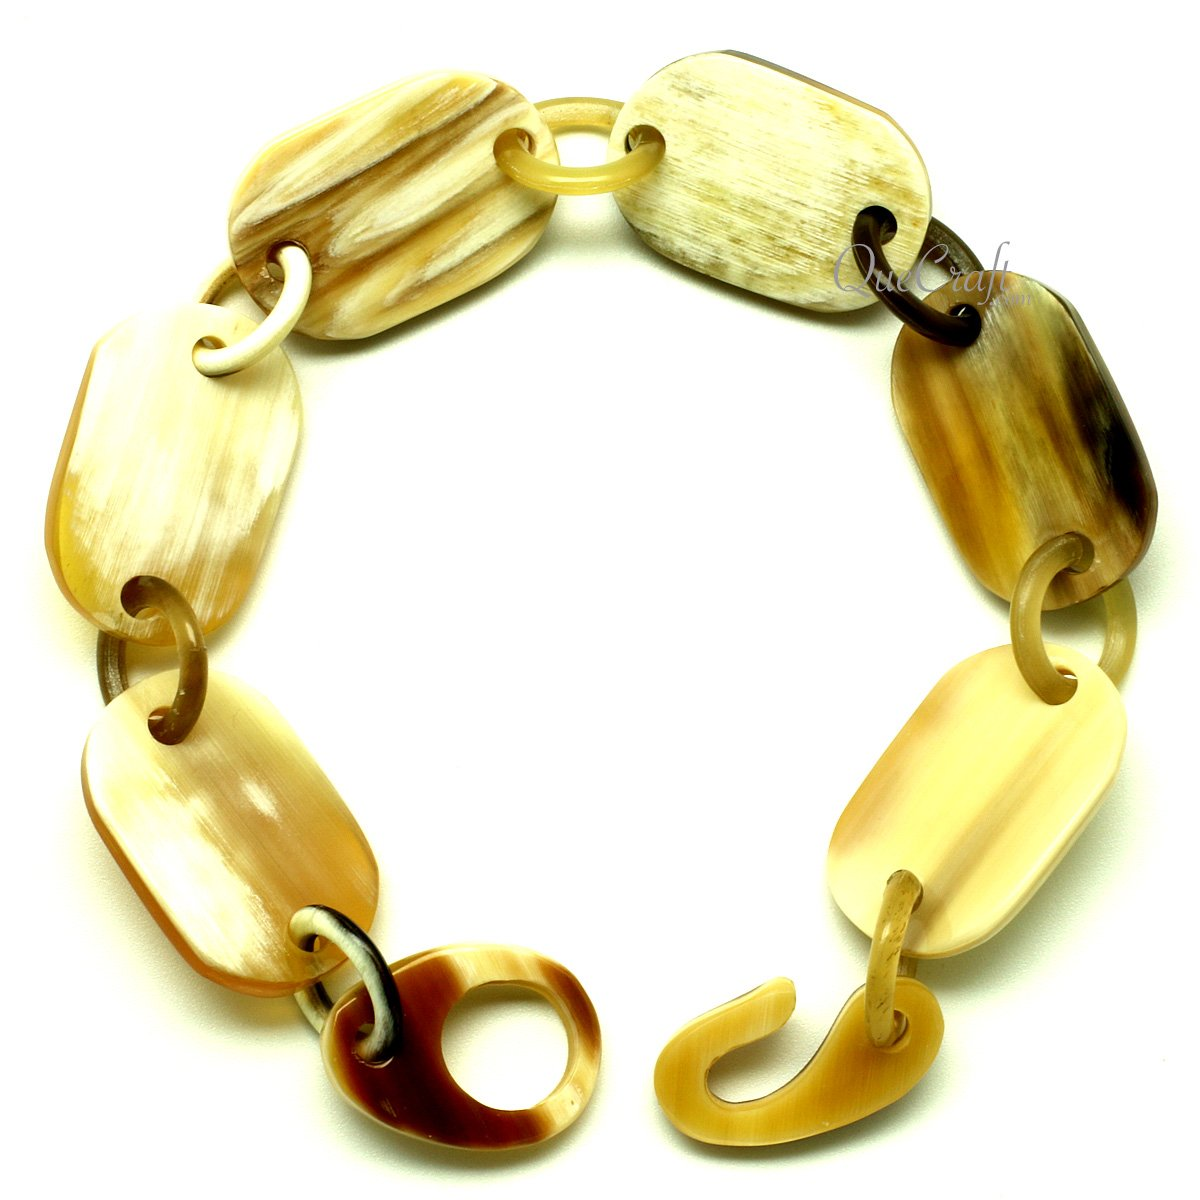 Horn Chain Bracelet #13154 - HORN.JEWELRY by QueCraft